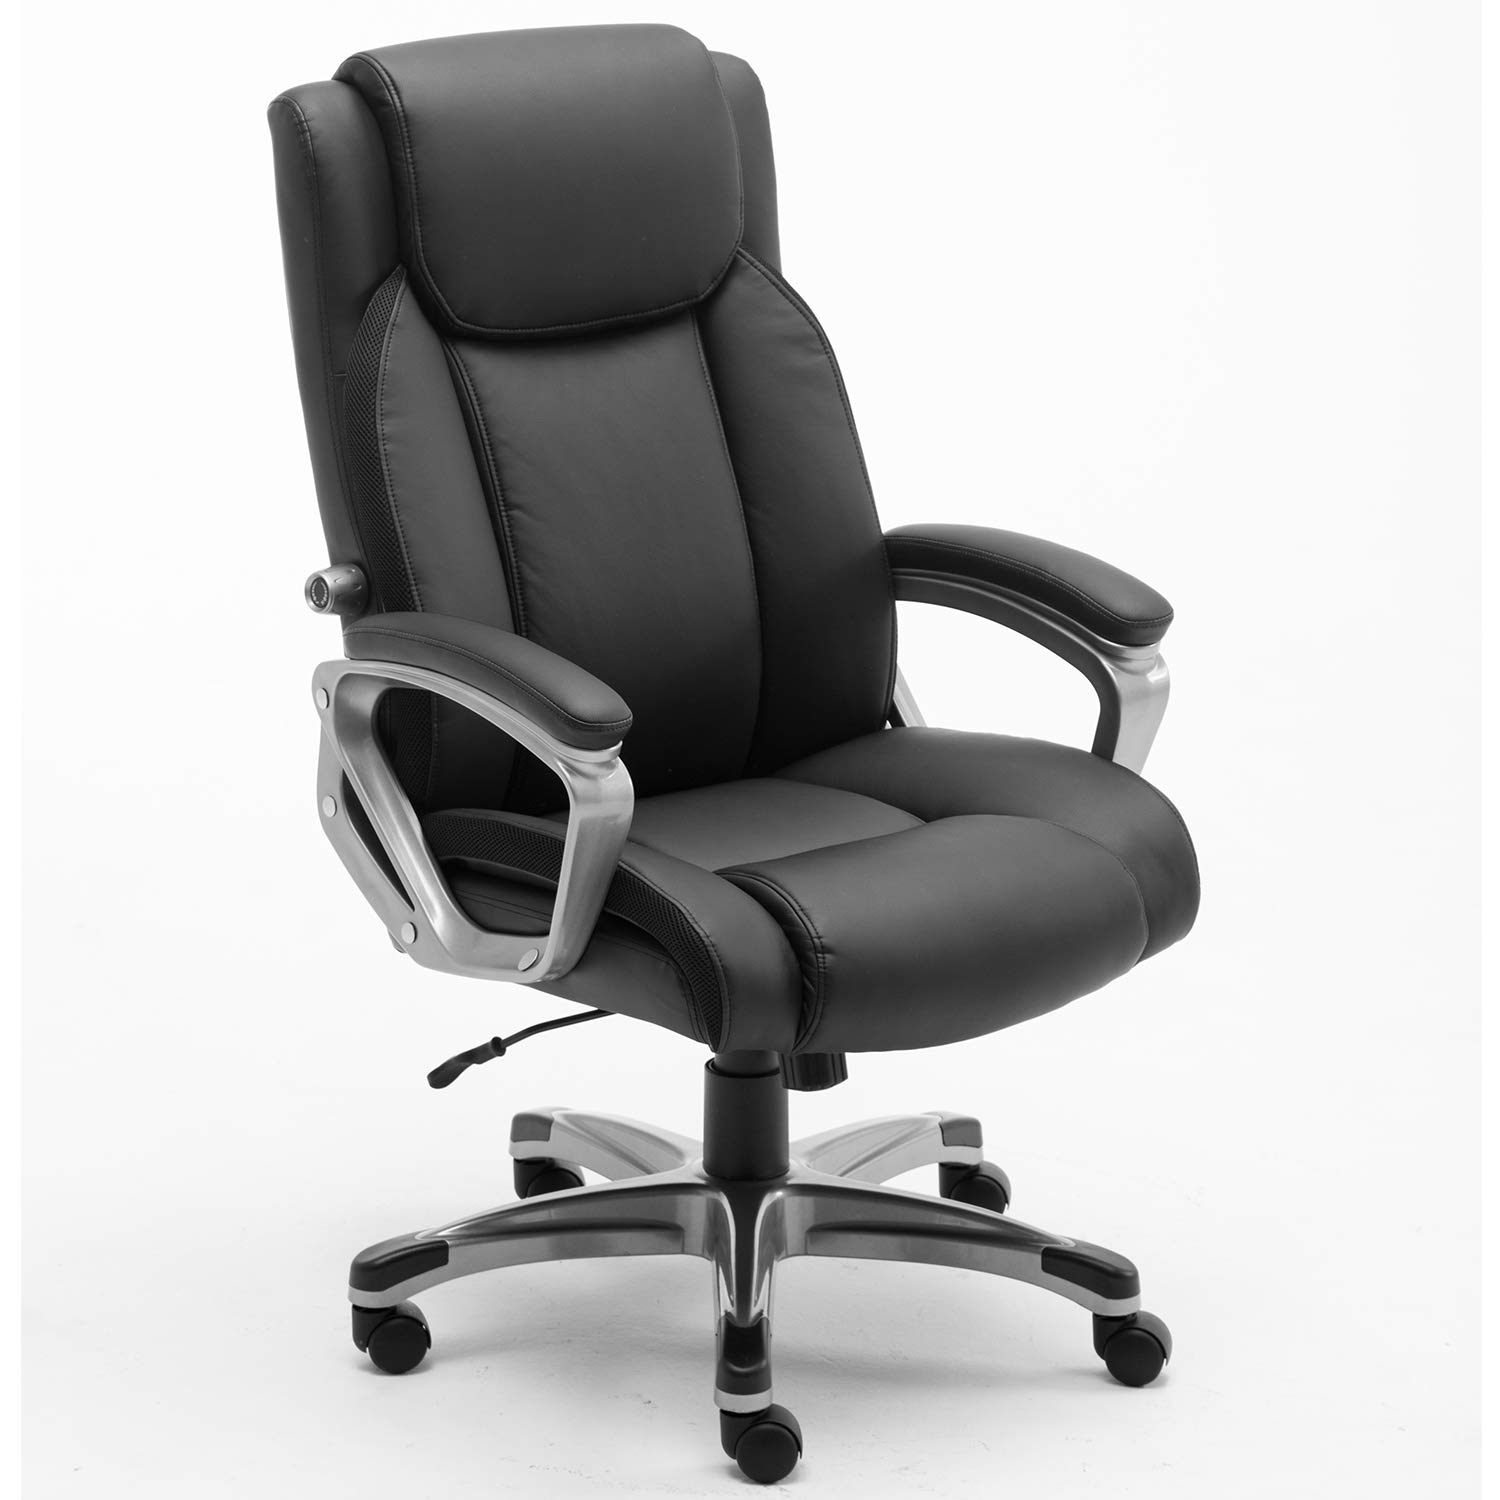 CANMOV High-Back Office Desk Chair Comfortable Leather - Executive Swivel Office Computer Desk Chair - Adjustable Lumbar Support - Easy Tool Free Assembly (Black)